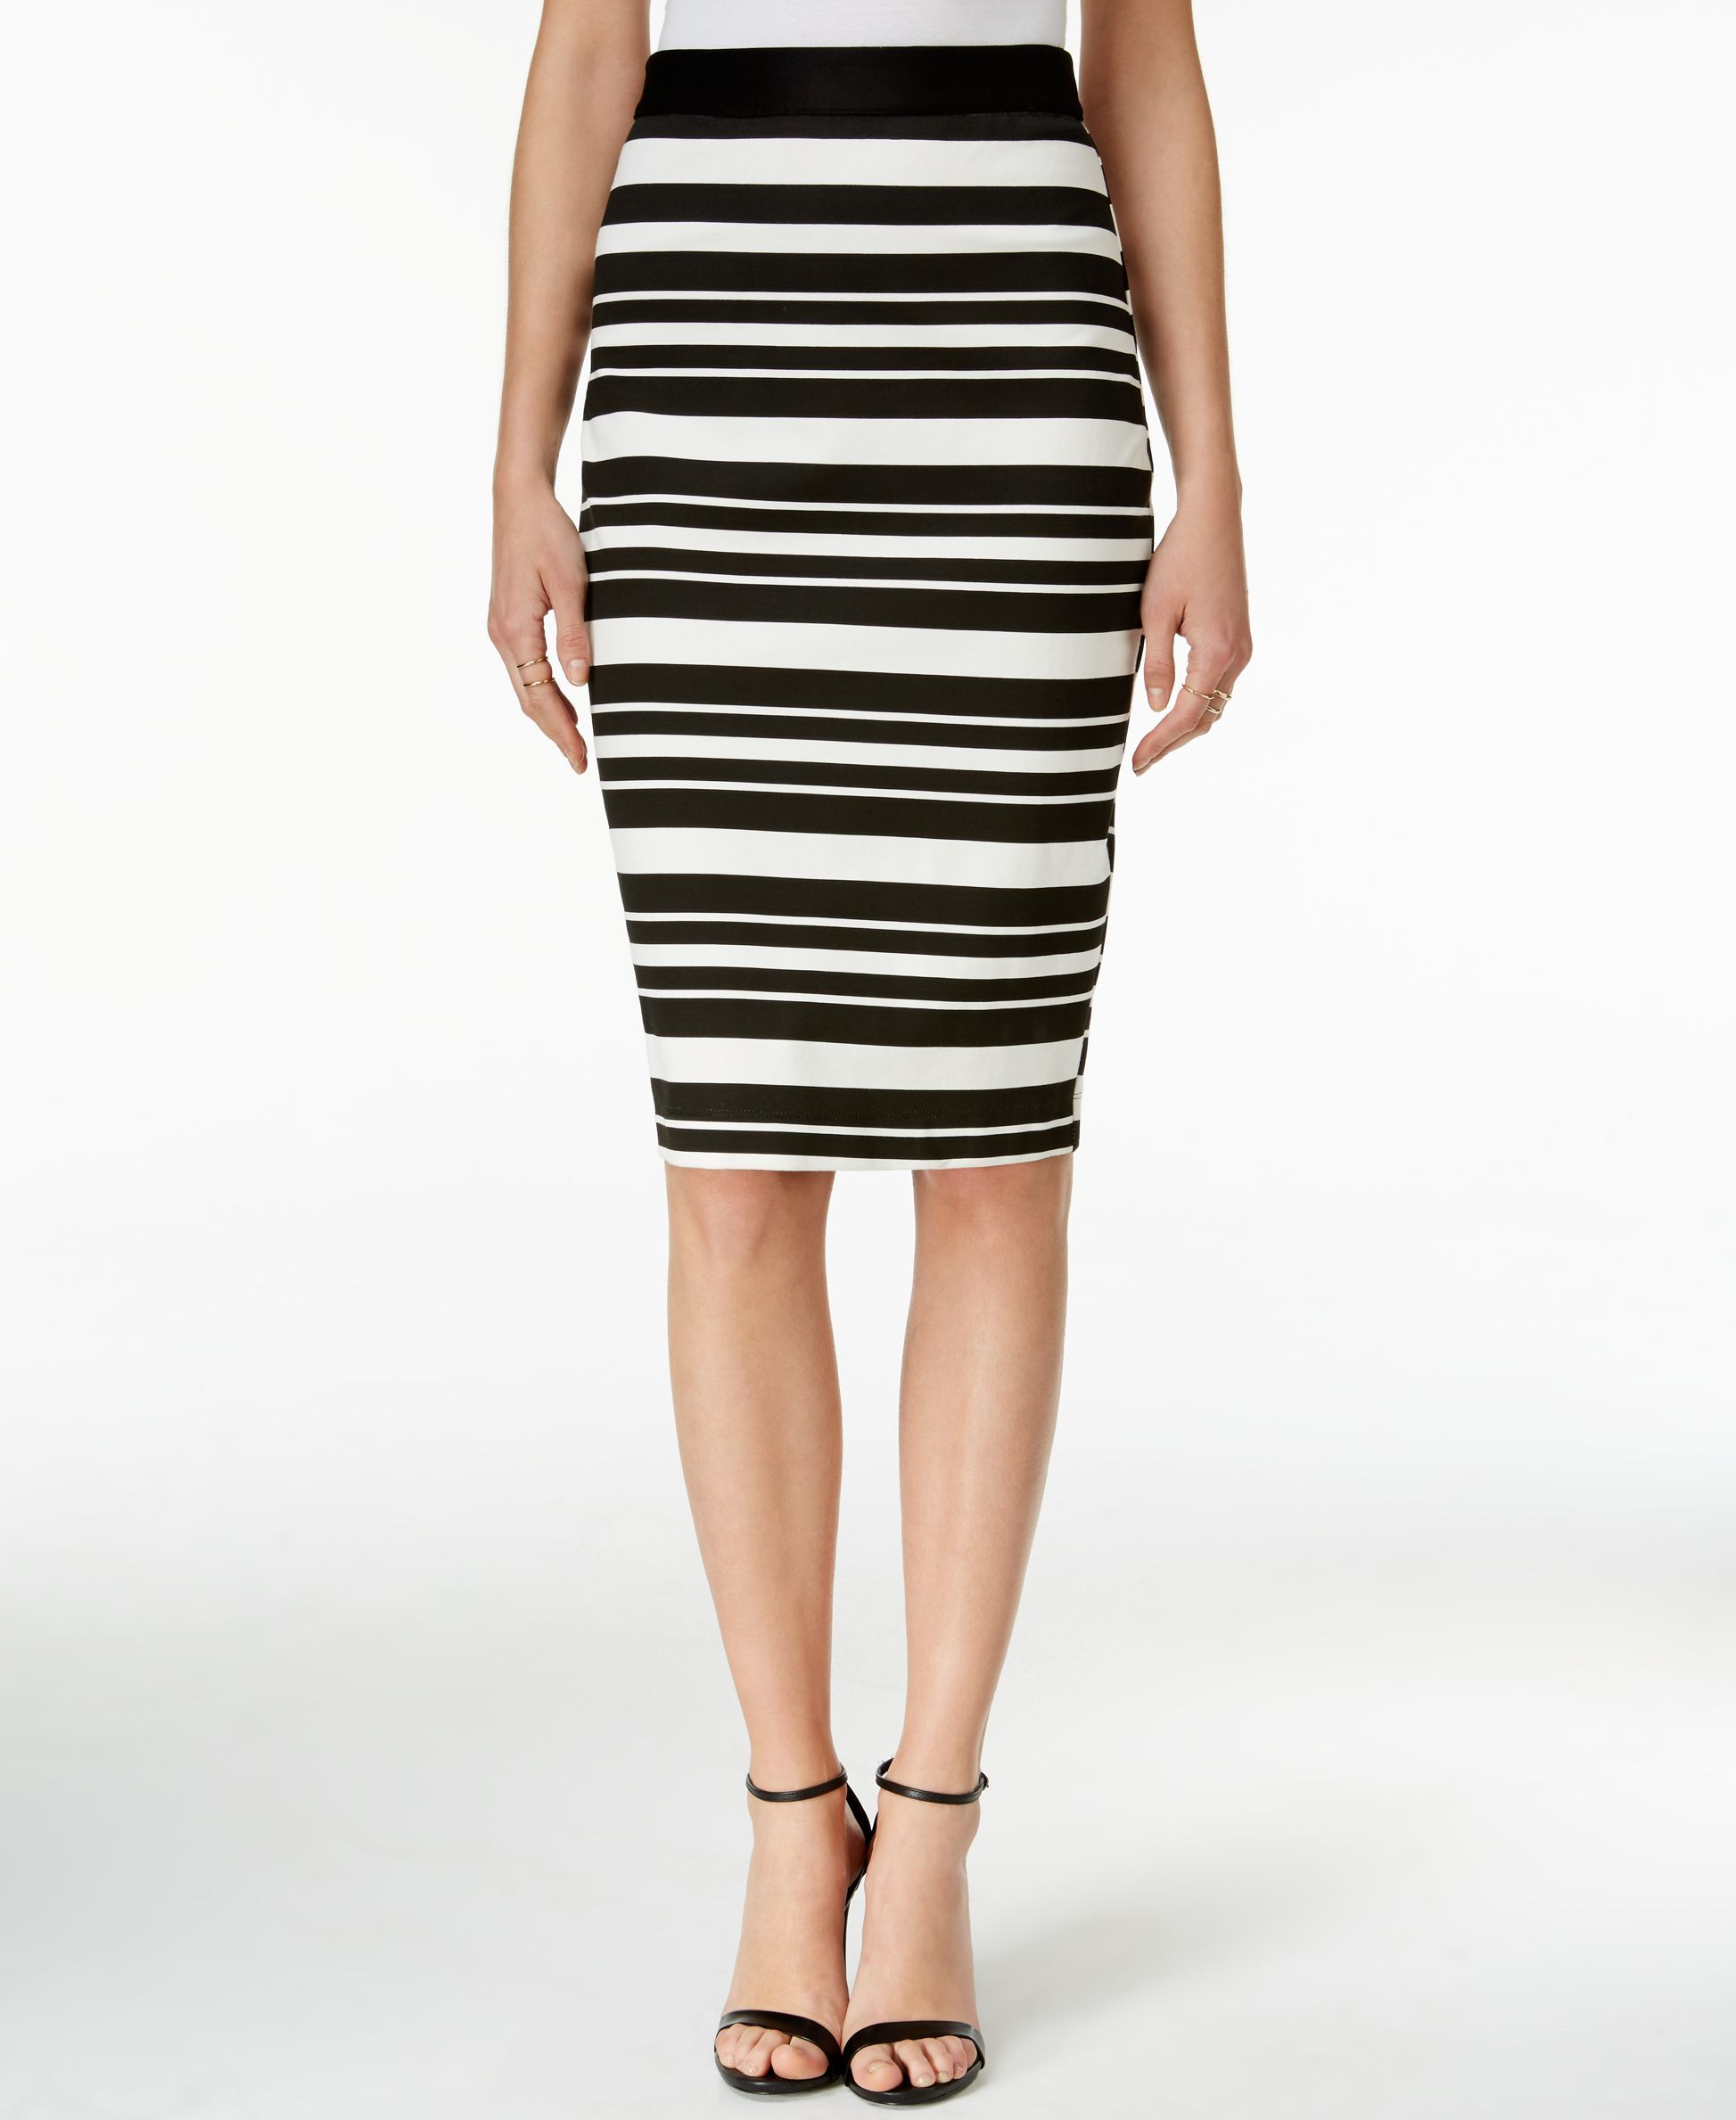 f6d0748797 Bar Iii Striped Pencil Skirt, Only at Macy's | Products